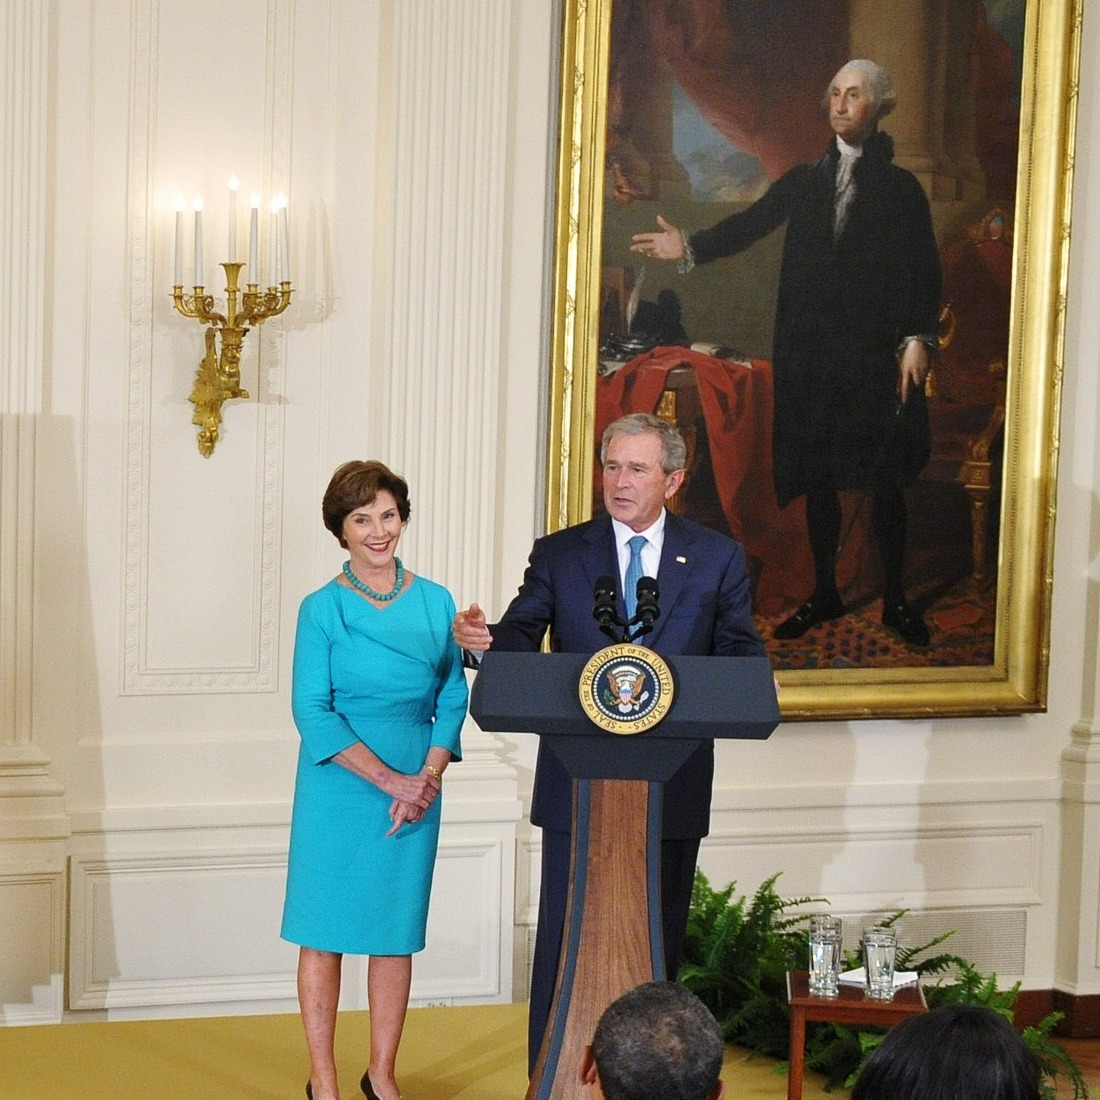 Former president George W. Bush and his wife Laura Bush speak during the unveiling of their portraits in the East Room of the White House in Washington, DC.